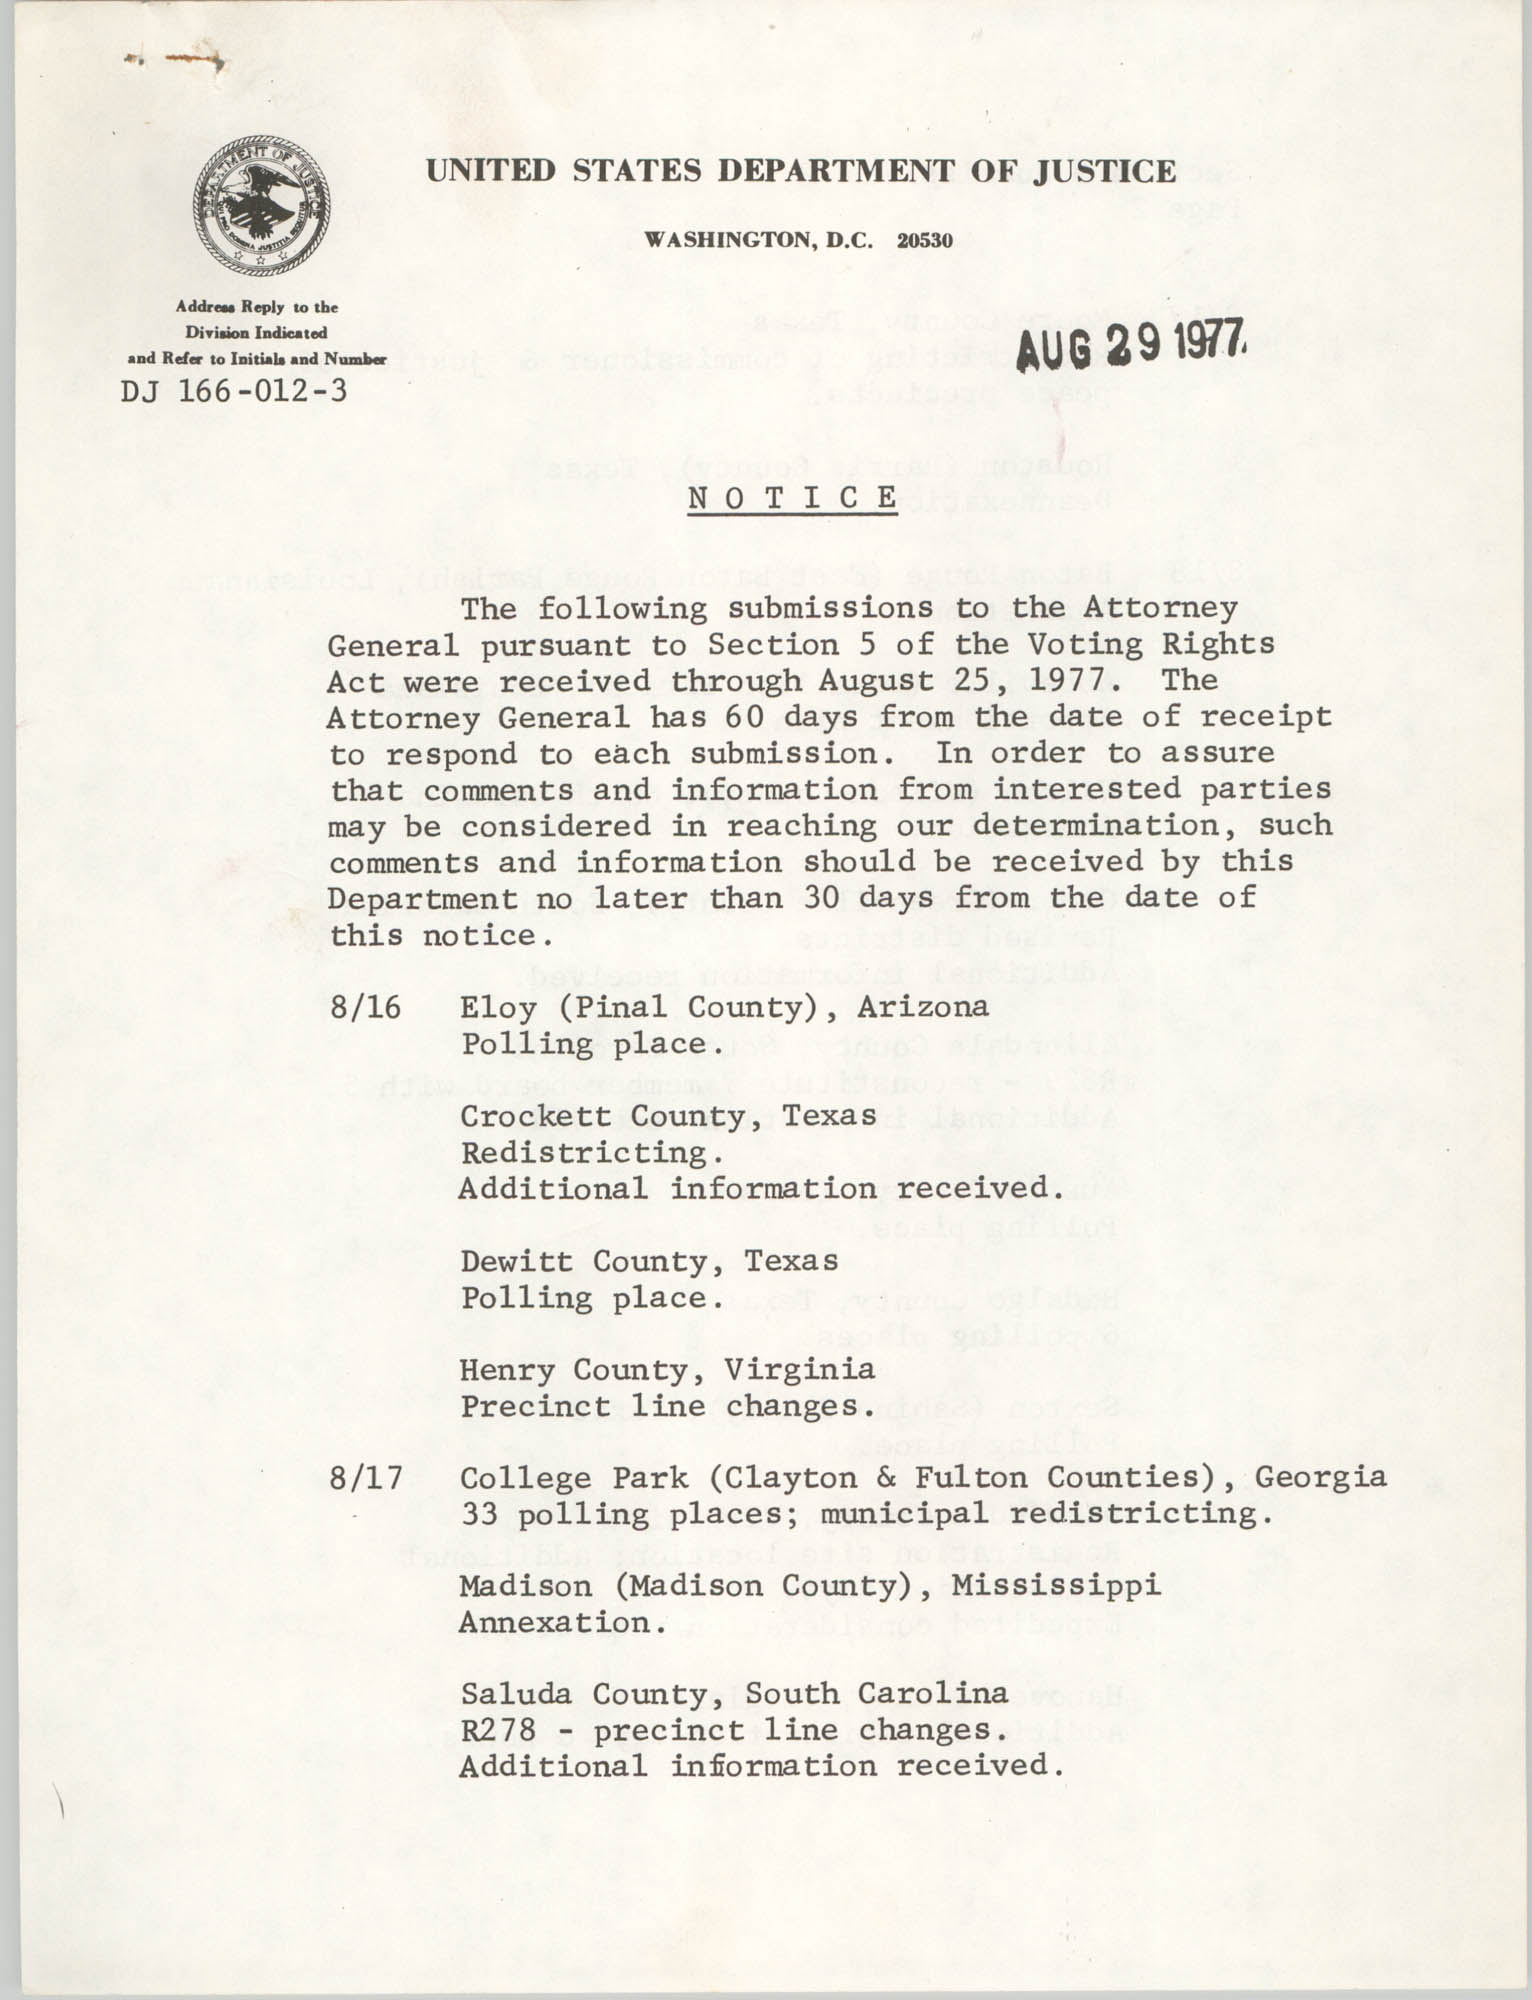 United States Department of Justice Notice, August 29, 1977, Page 1